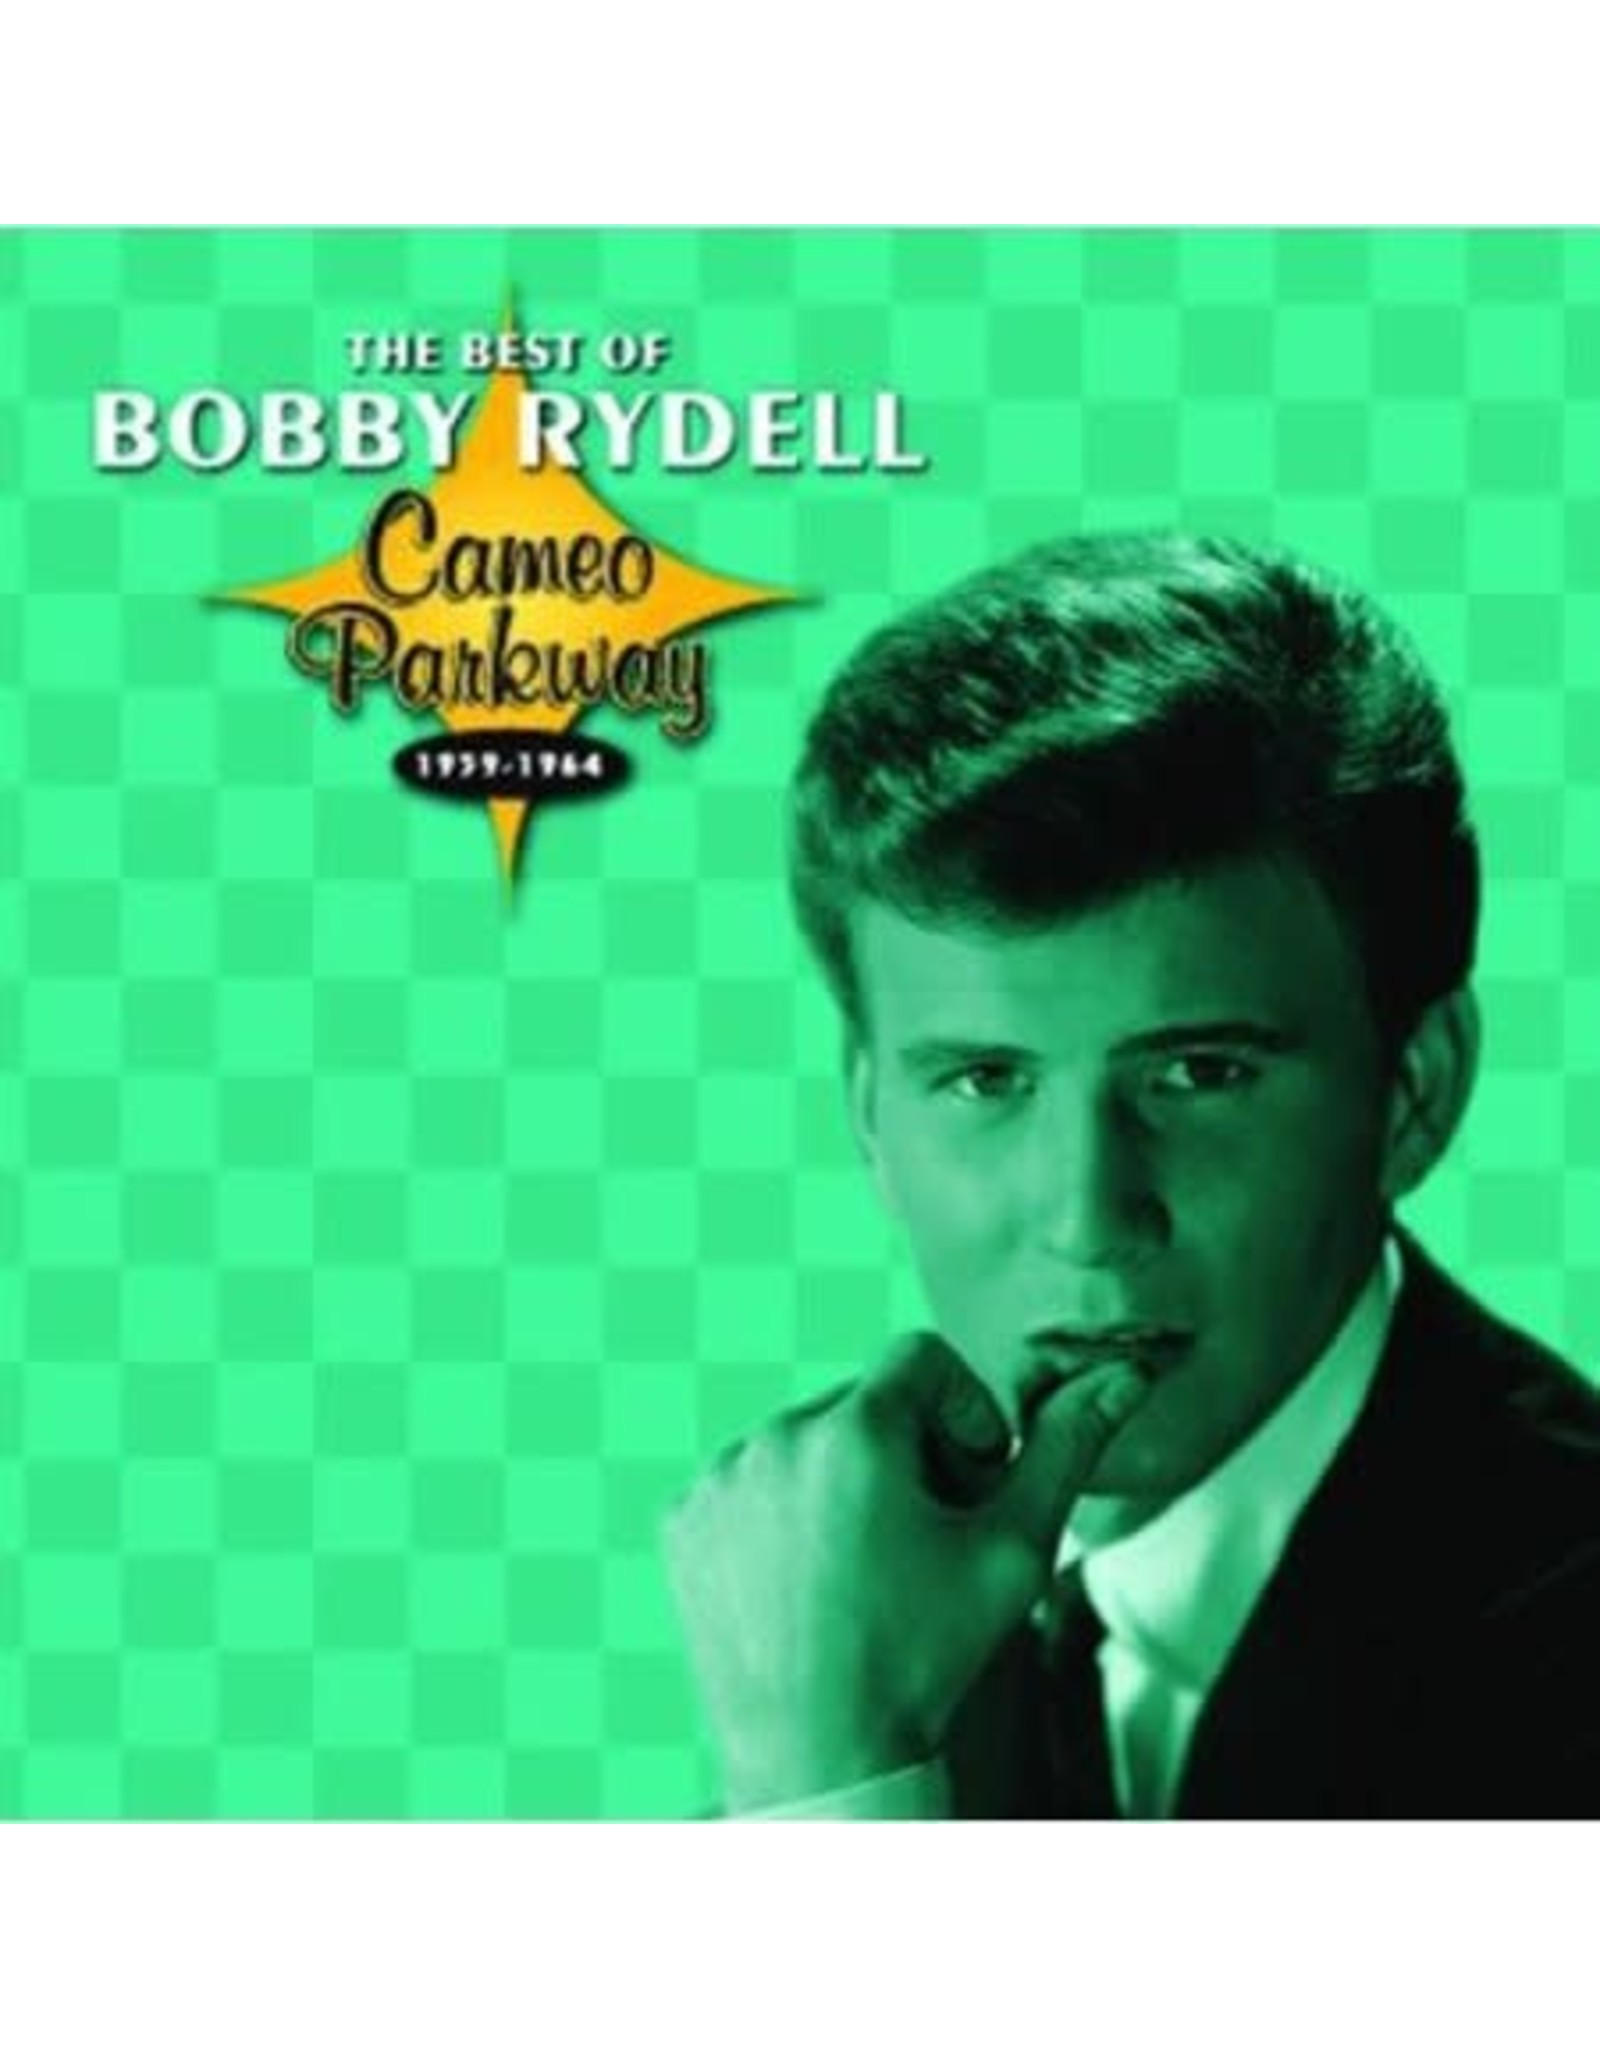 Rydell, Bobby - The Best Of: Cameo Parkway 1959-1964 CD